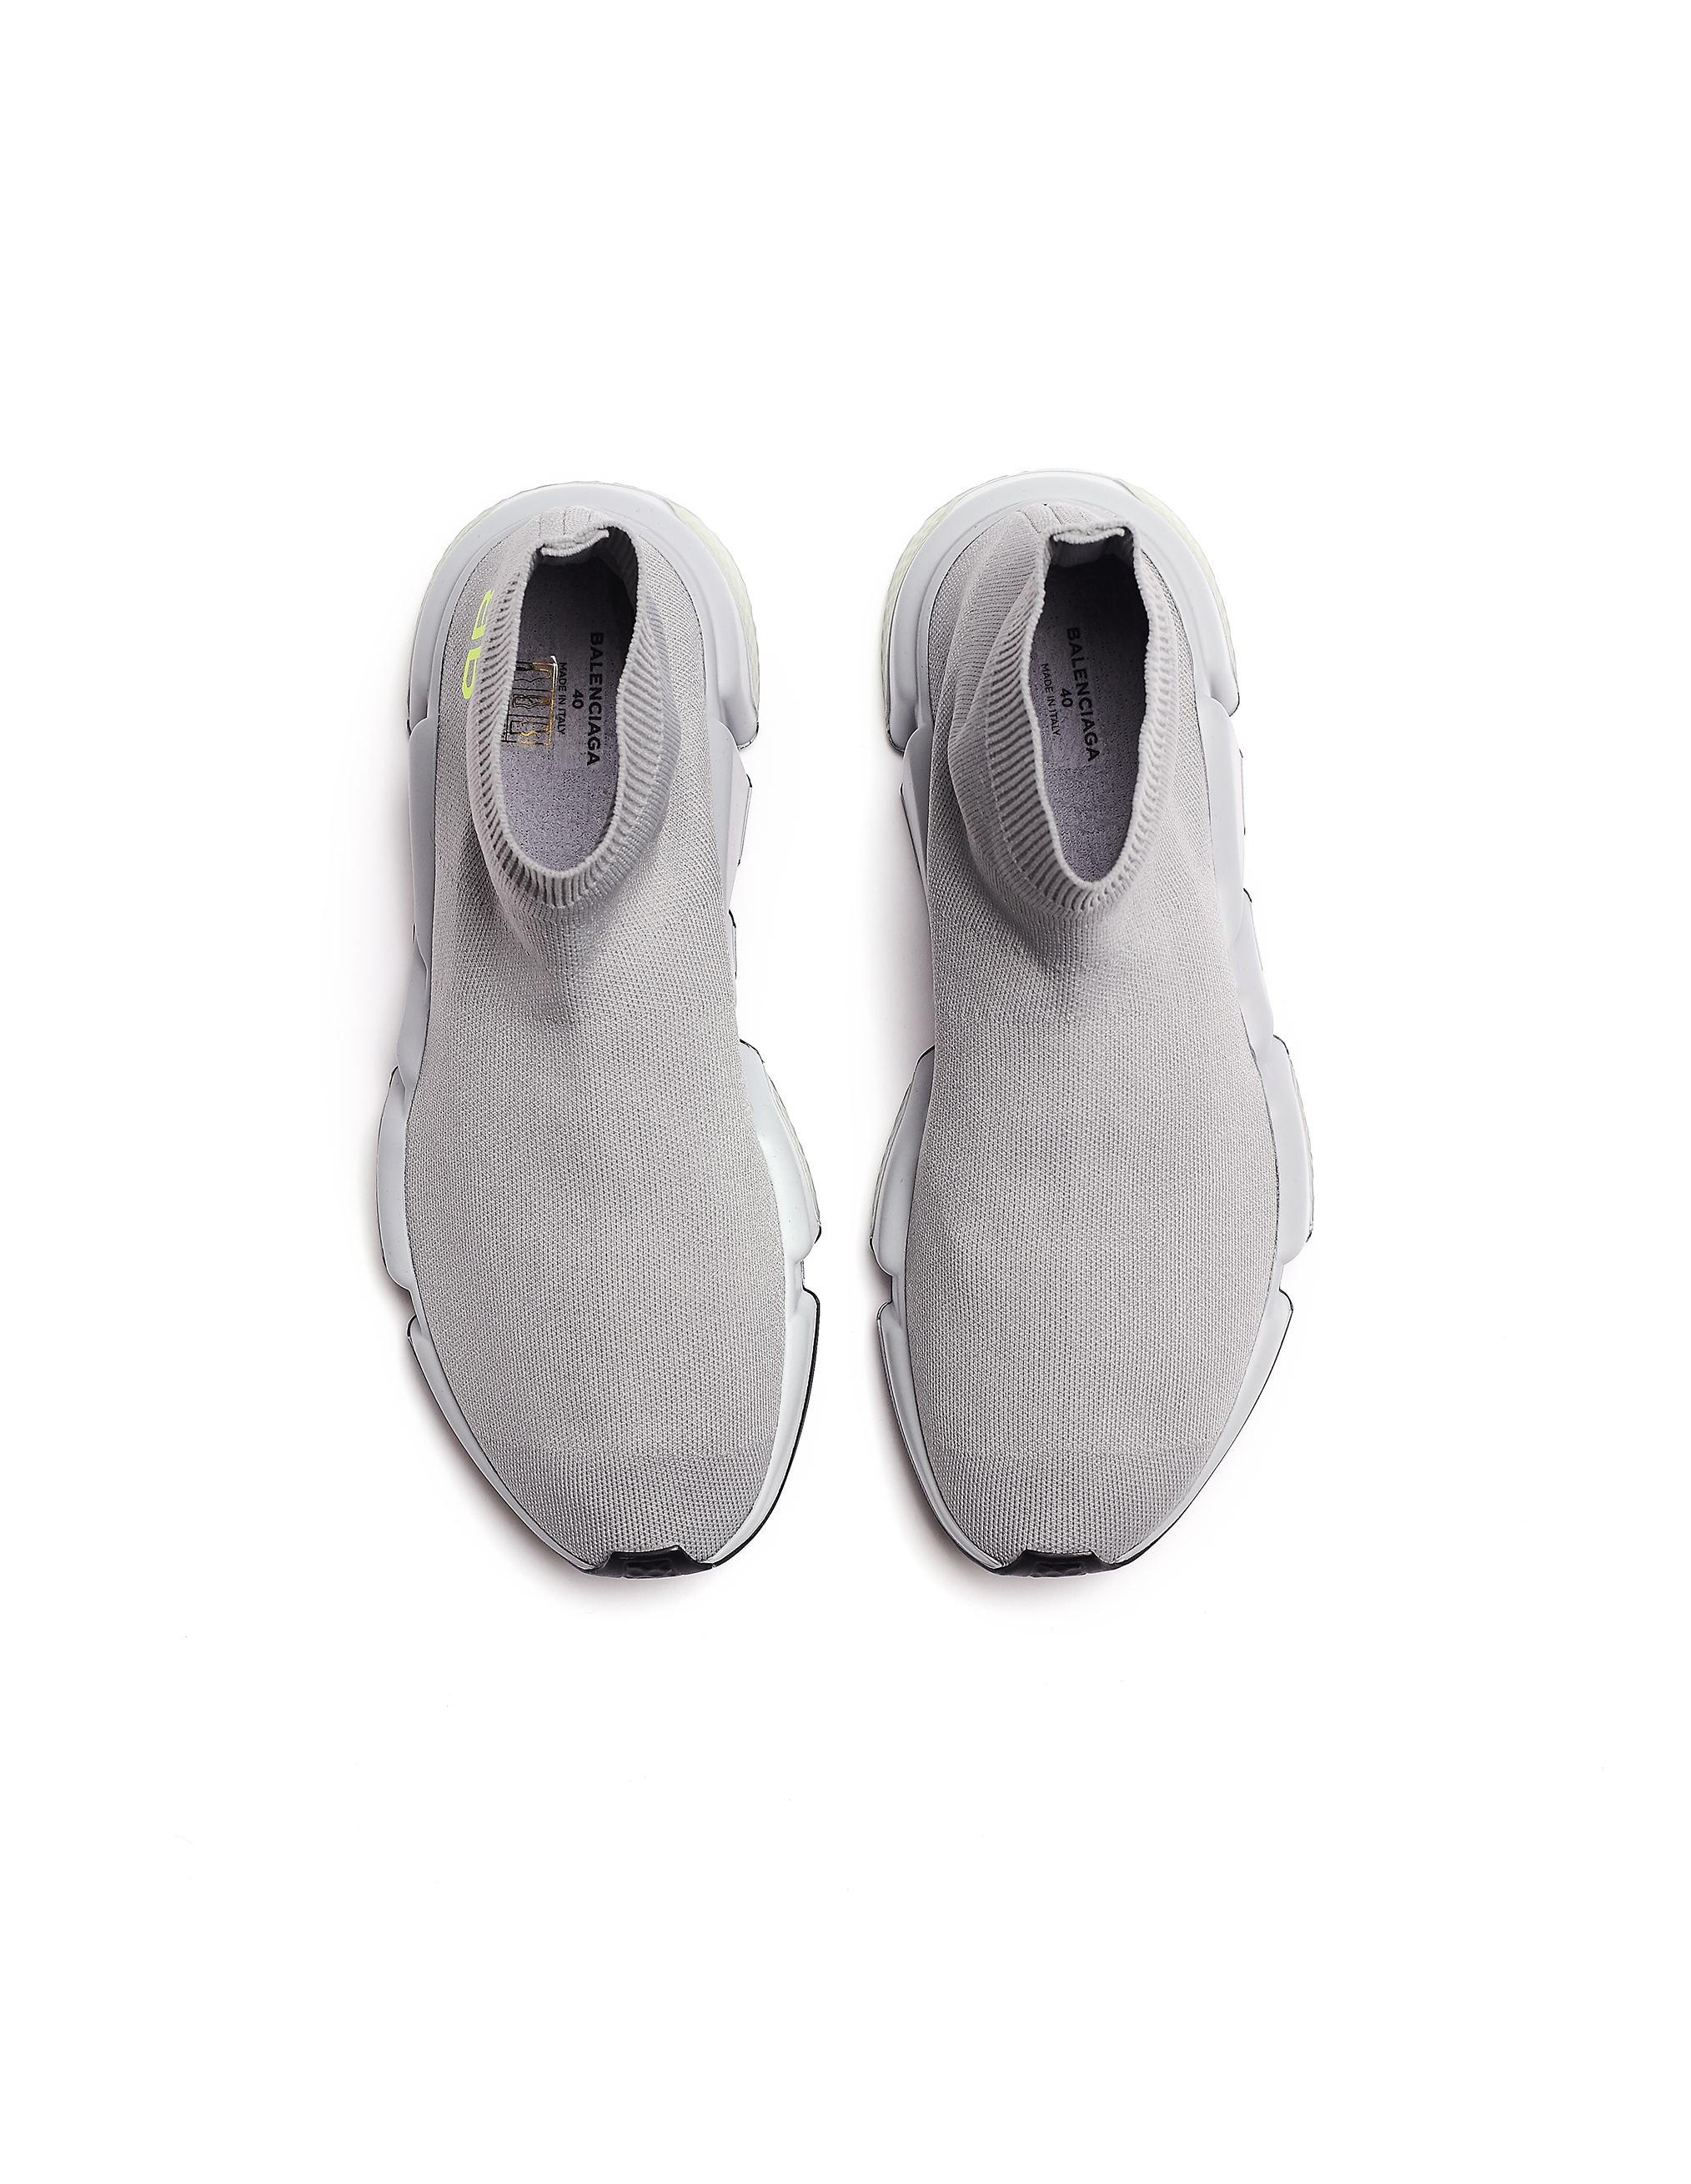 8ddfe1916a1f Lyst - Balenciaga Speed High Top Sock Trainers in Gray - Save 30%